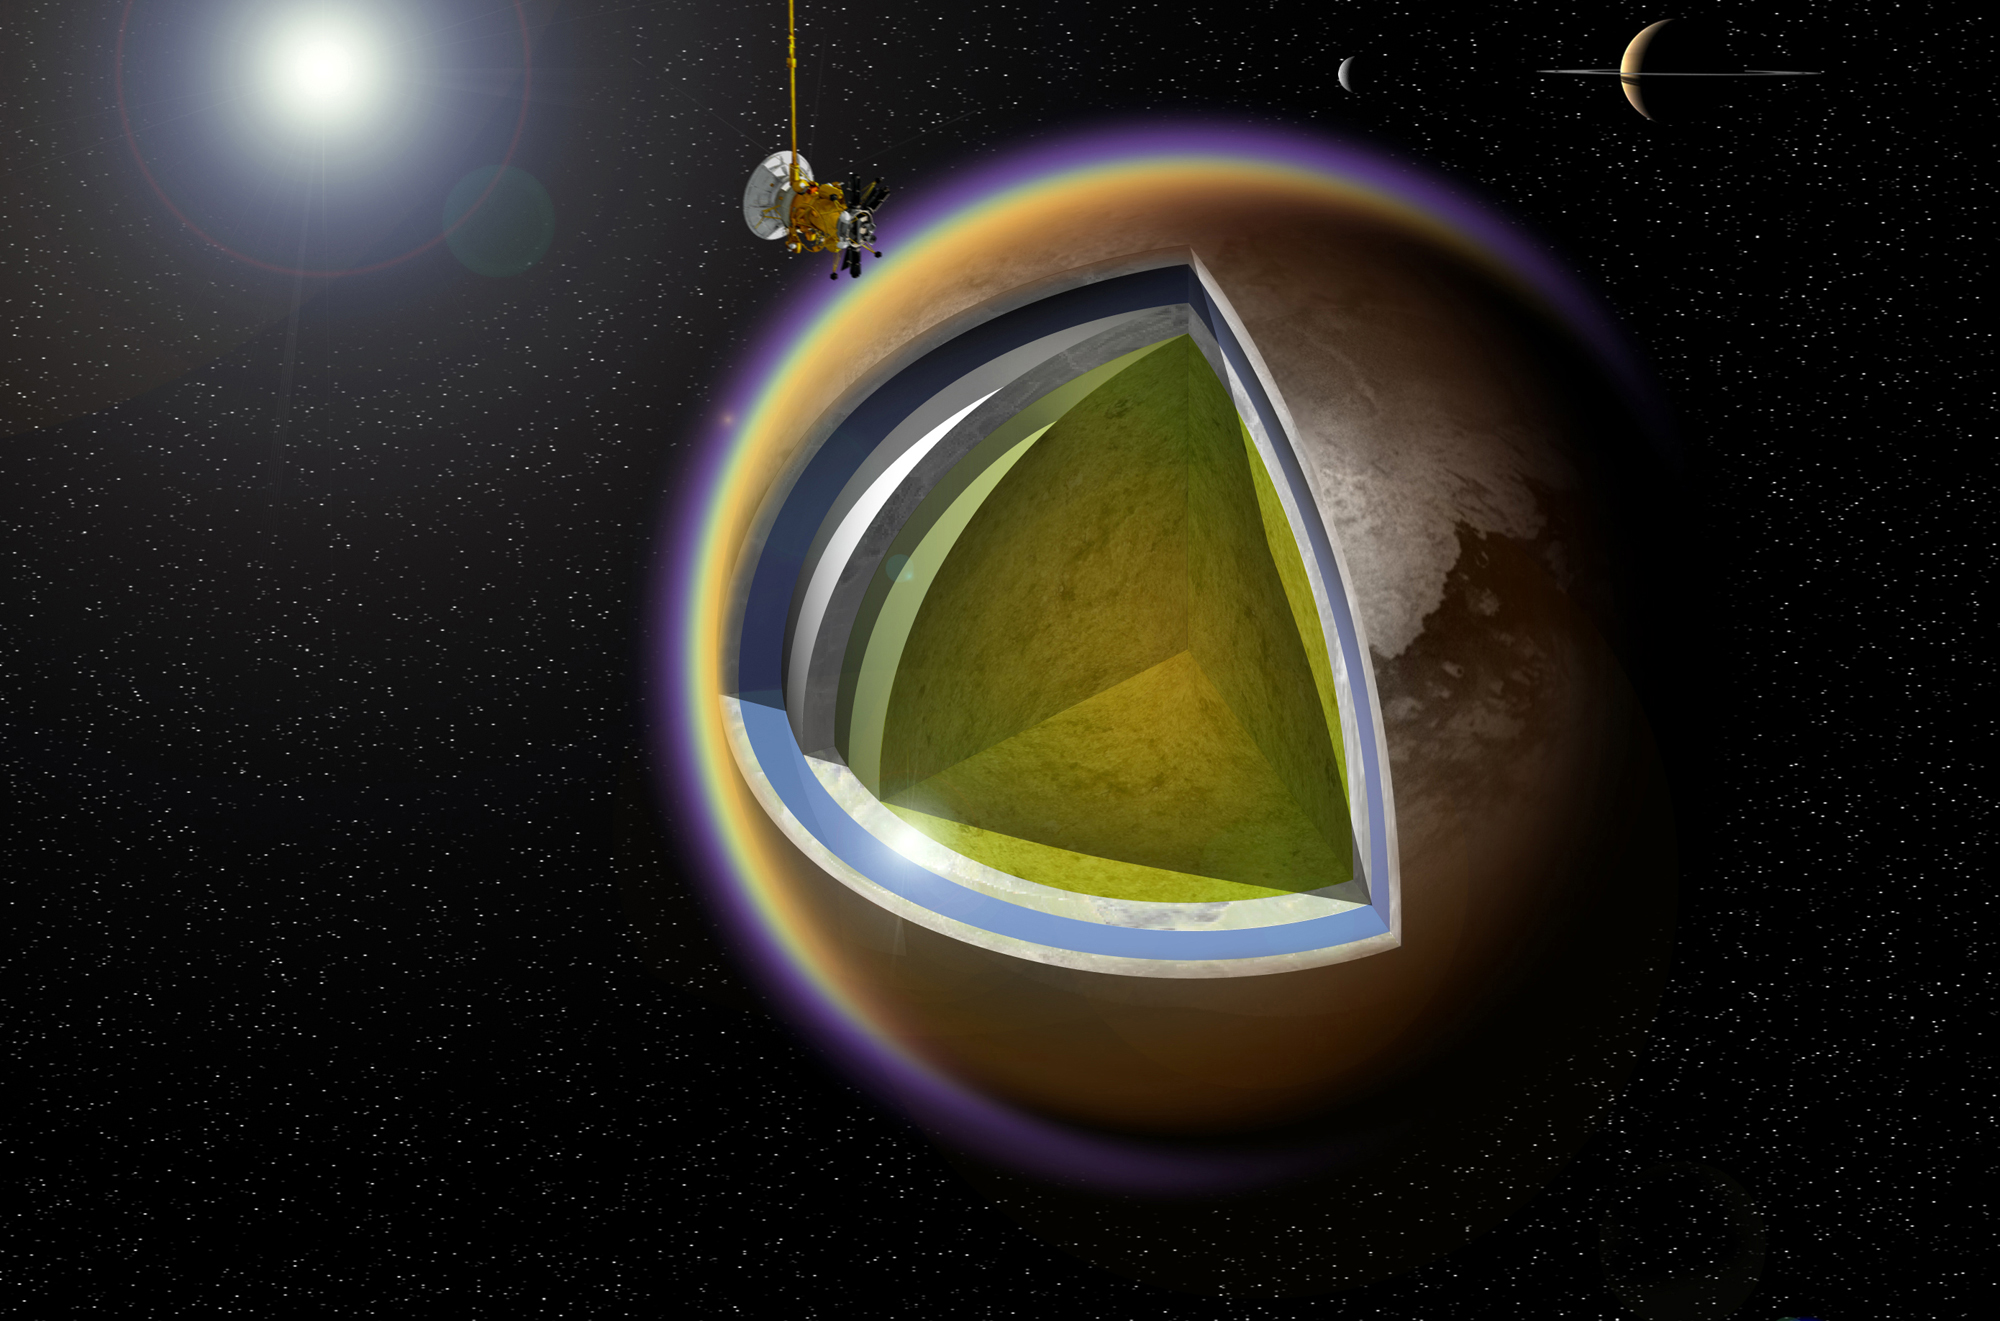 NASA Spacecraft Buzzes Saturn's Largest Moon Titan for 100th Time